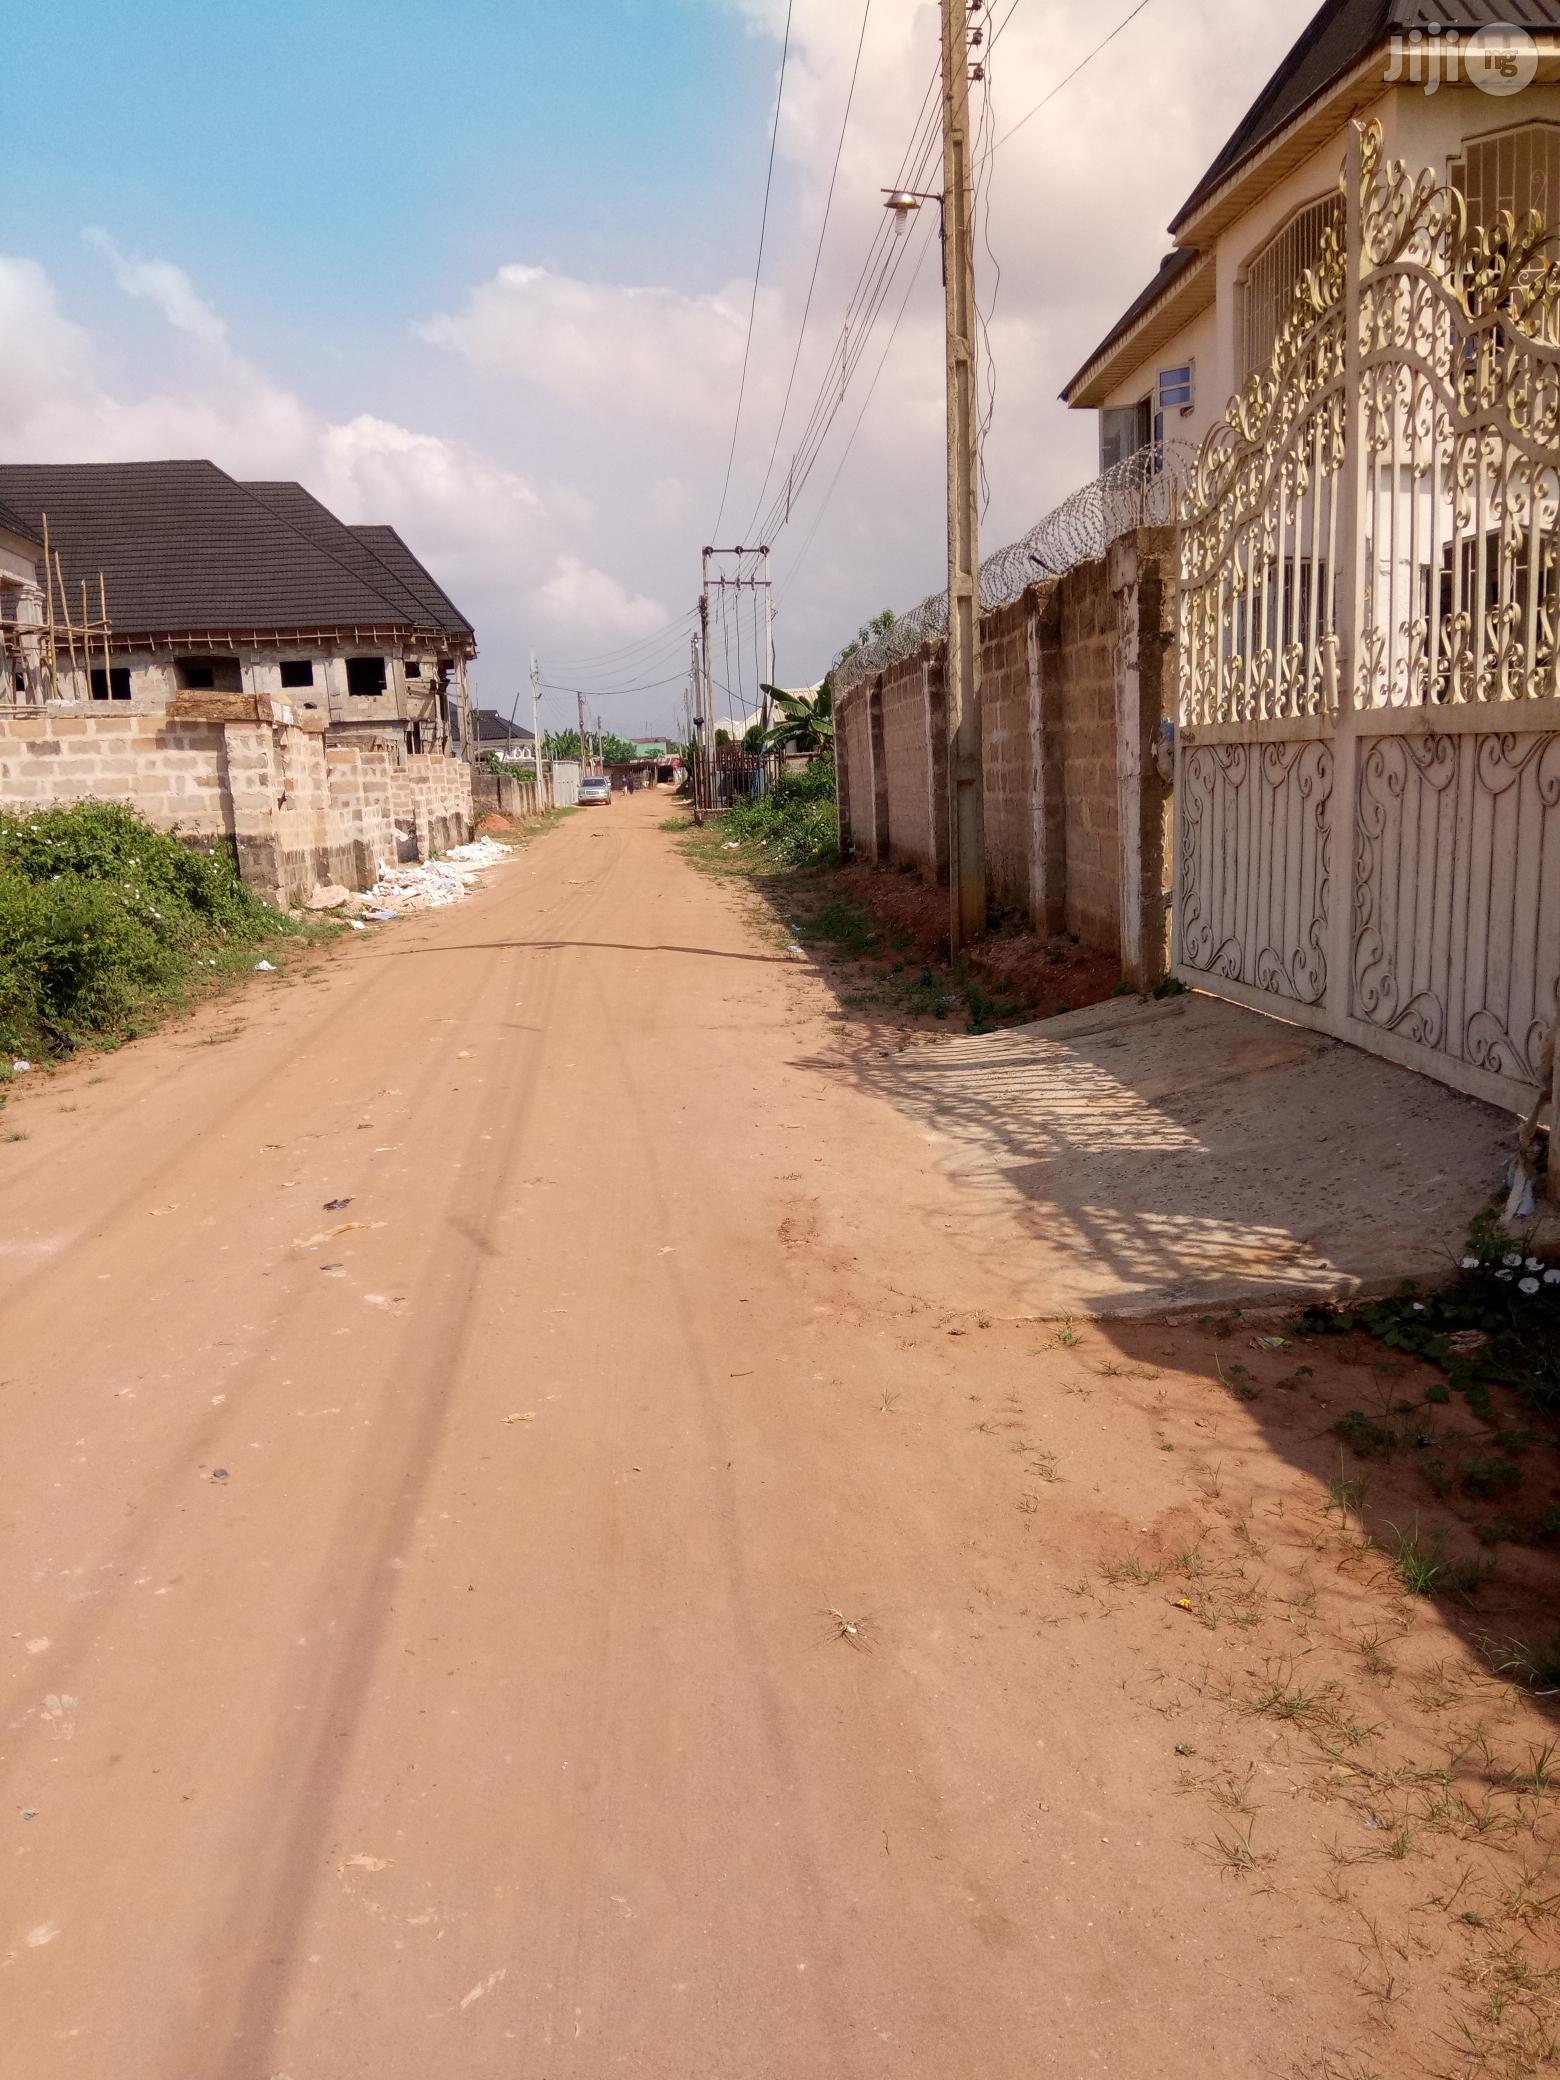 Archive: Distress Sale: Very Genuine 50x100ft Plot Of Land For Give Away Price